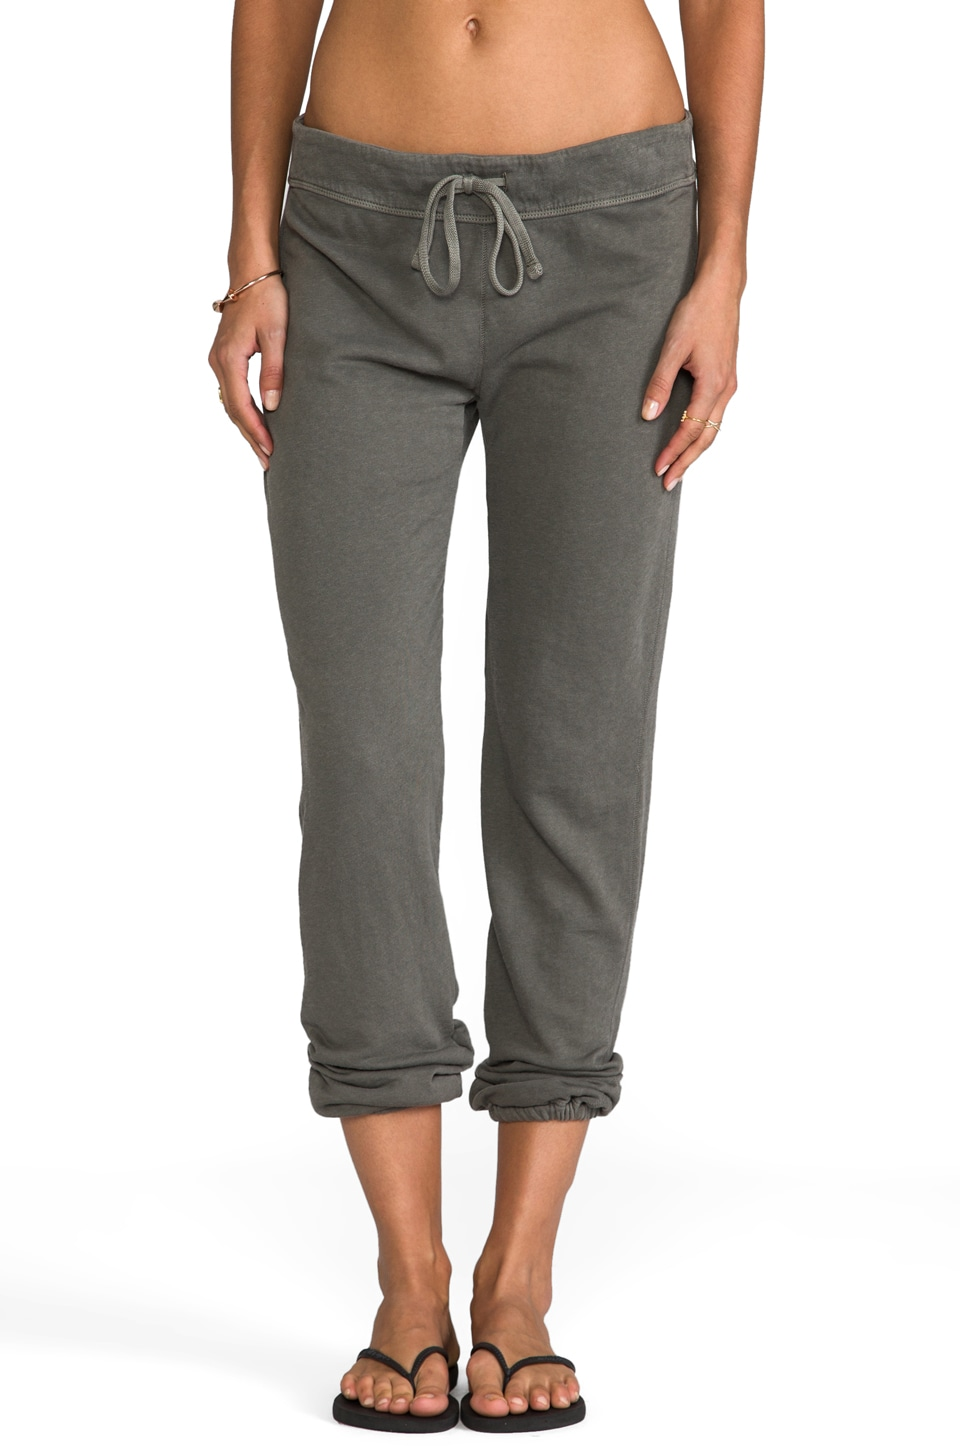 James Perse Vintage Cotton Genie Pant in Spruce